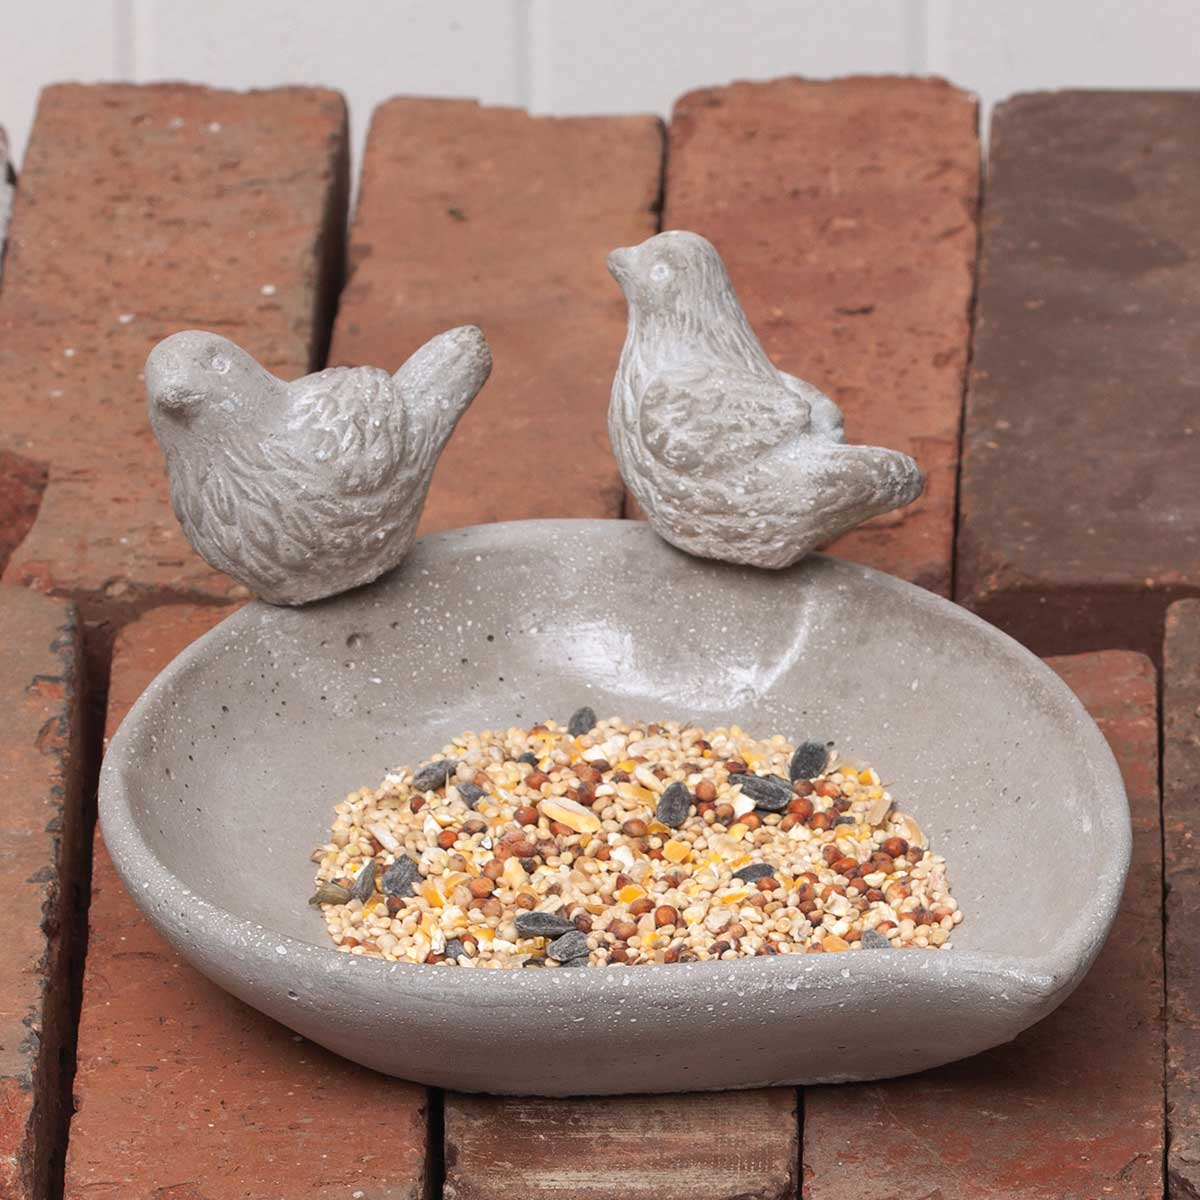 "CONCRETE TWEETER FEEDER LEAF SHAPED BIRD FEEDER WITH 2 BIRDS 7""X"